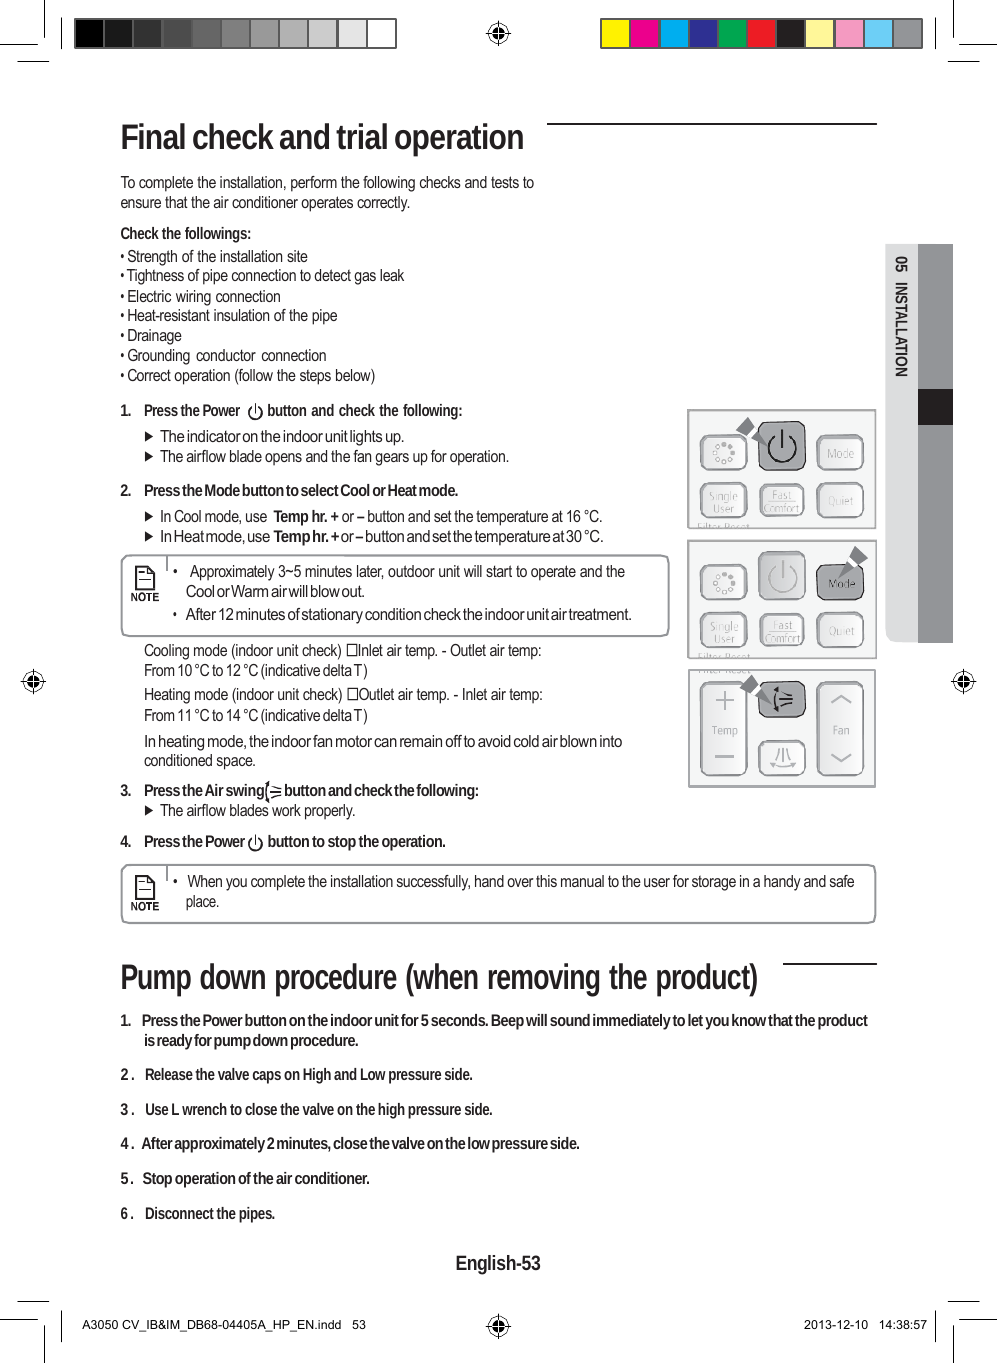 Samsung Electronics Co Swl B70f Air Conditioner User Manual 2 border=